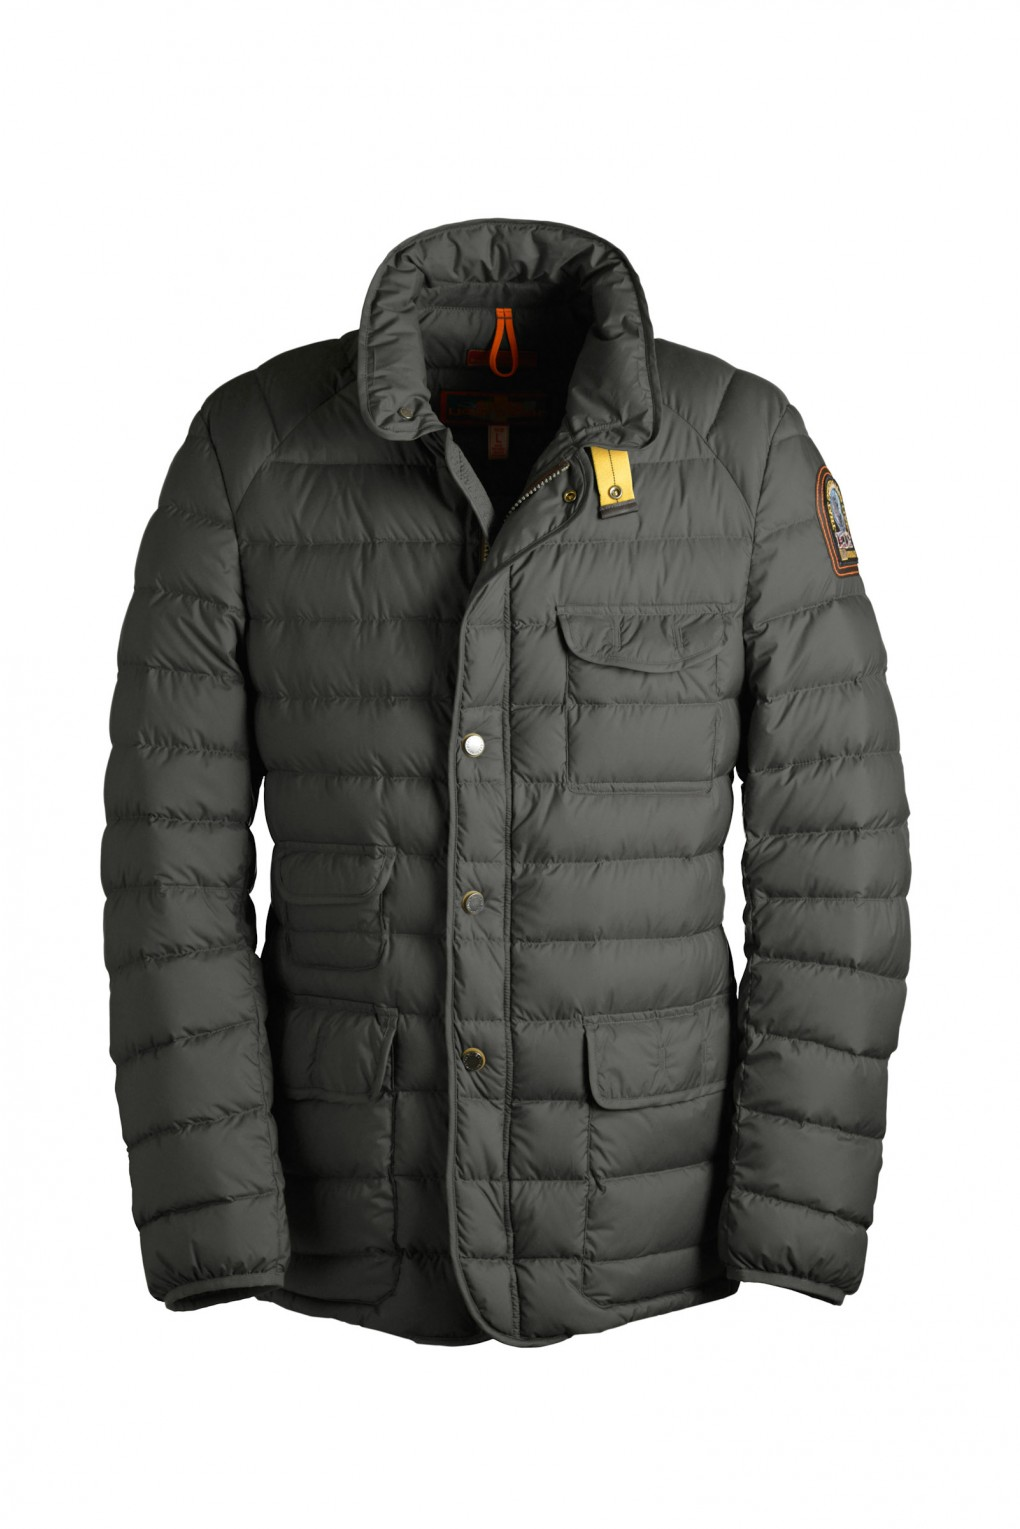 parajumpers ORSO man outerwear Sage